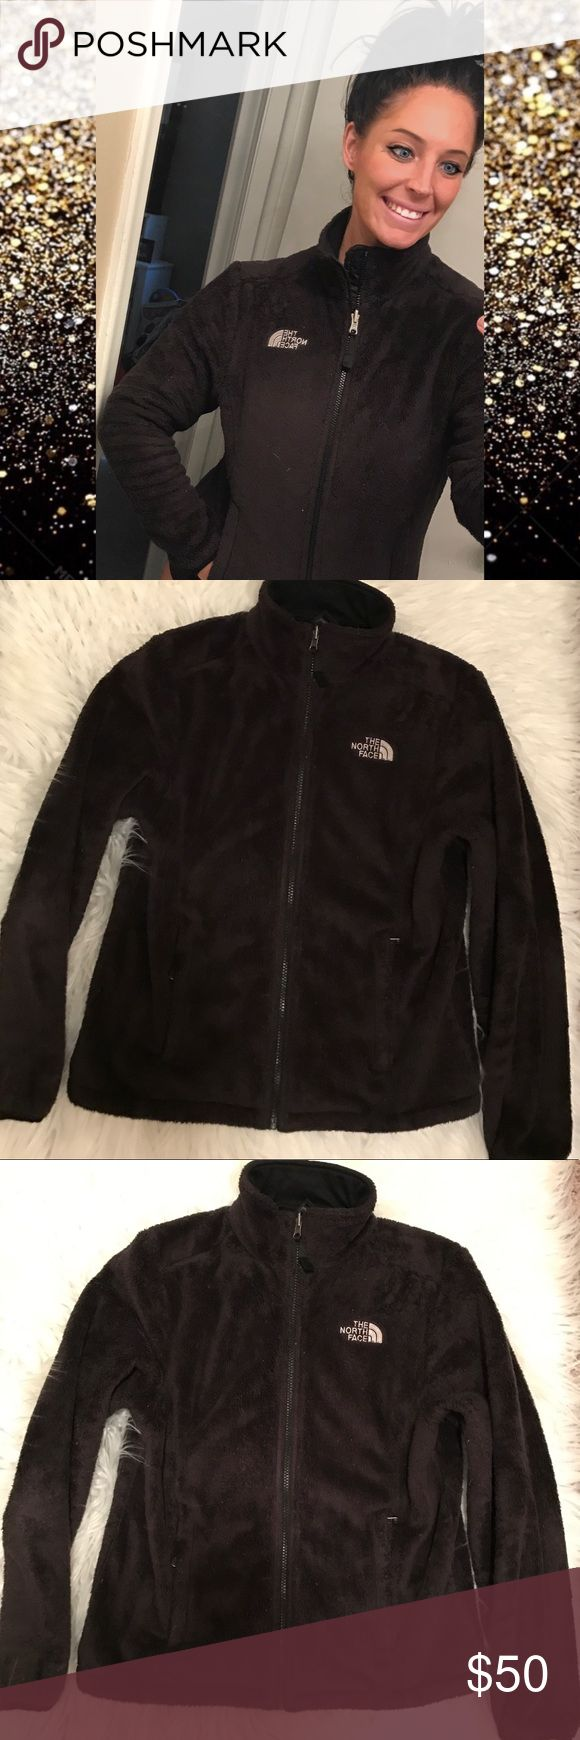 Women's North Face Small Slight piling on front as shown in picture. Still super super soft and comfy. Black. The North Face Jackets & Coats